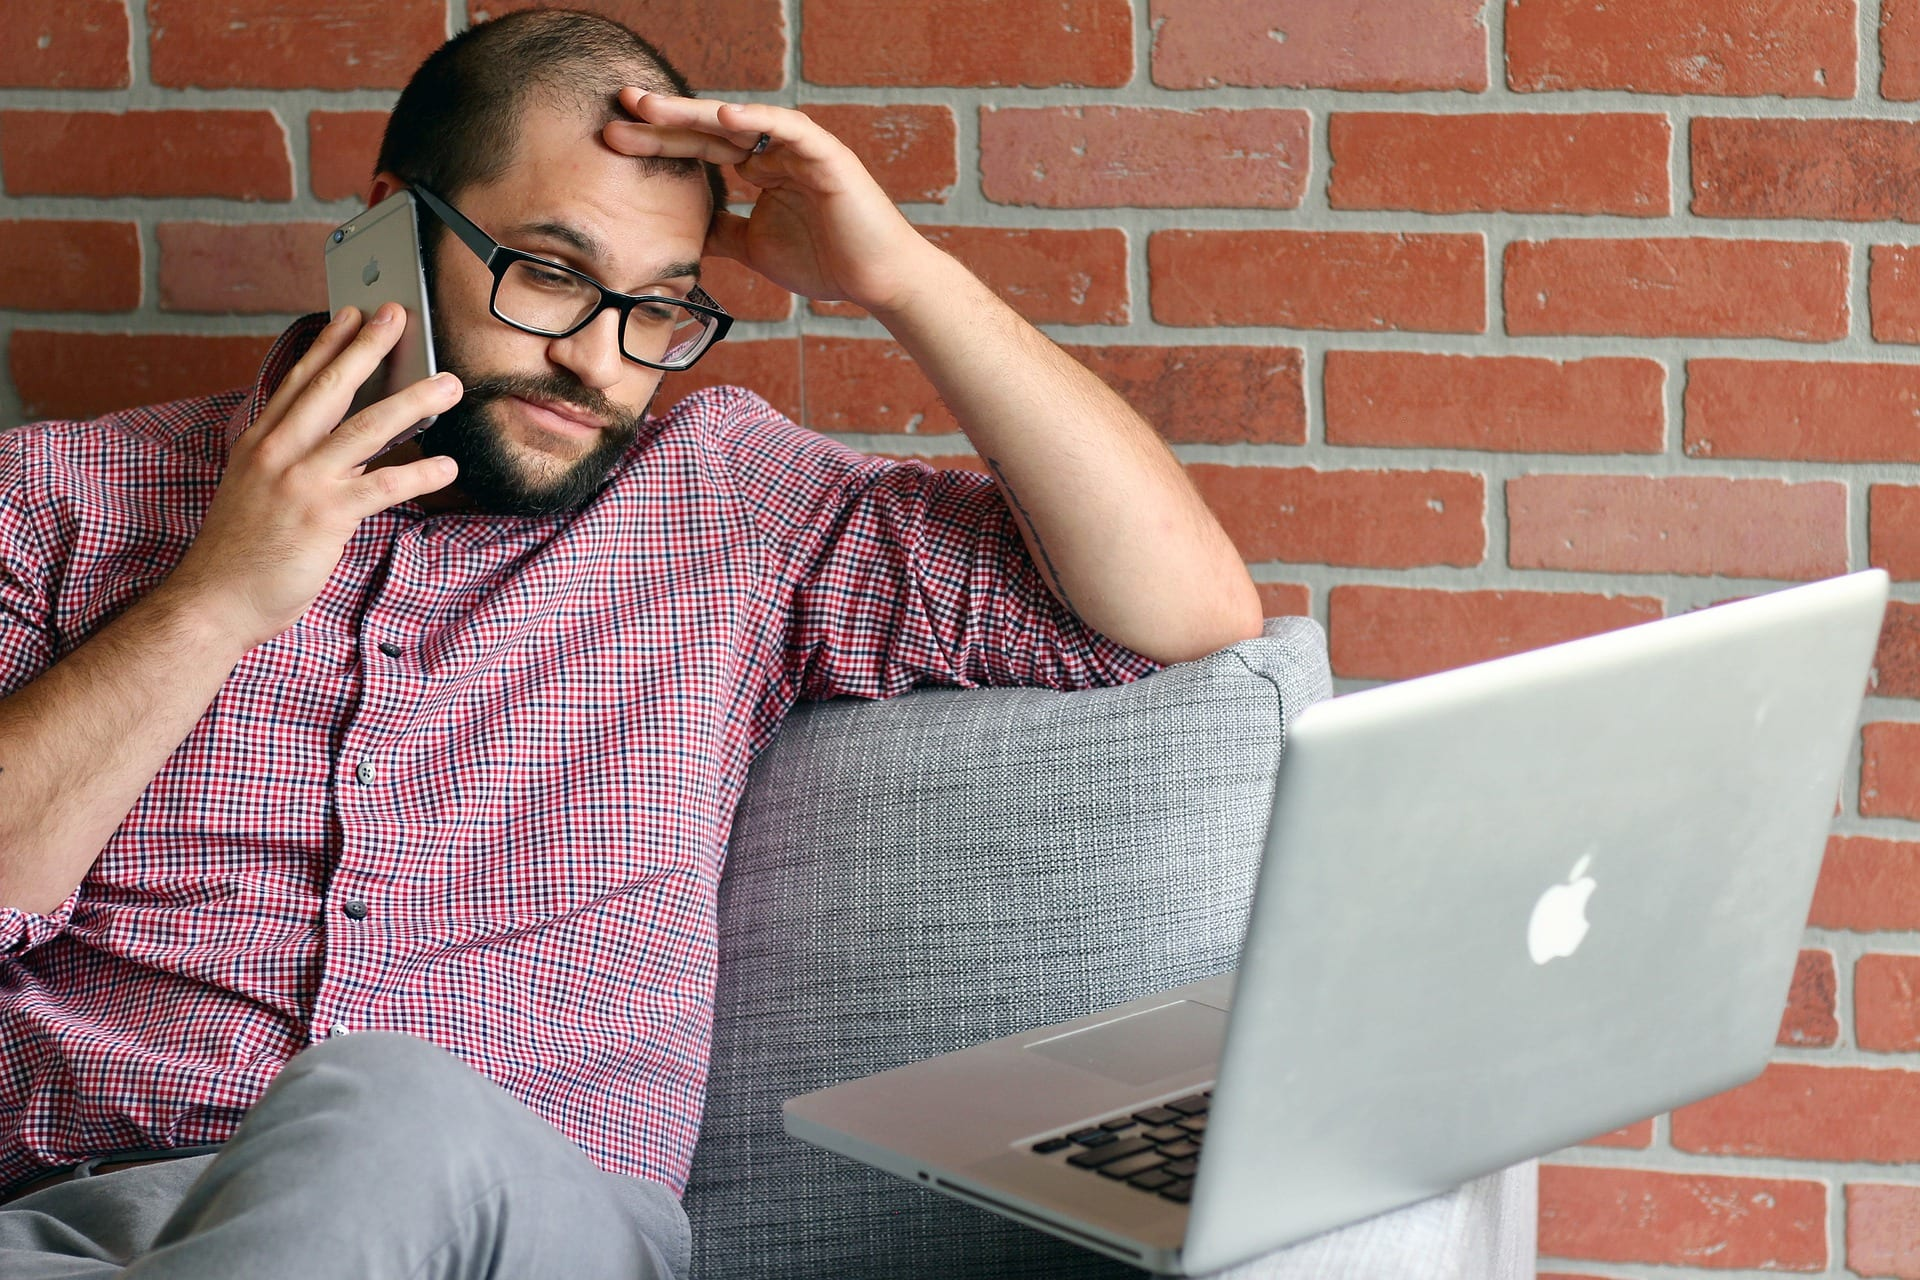 How to overcome boredom at work